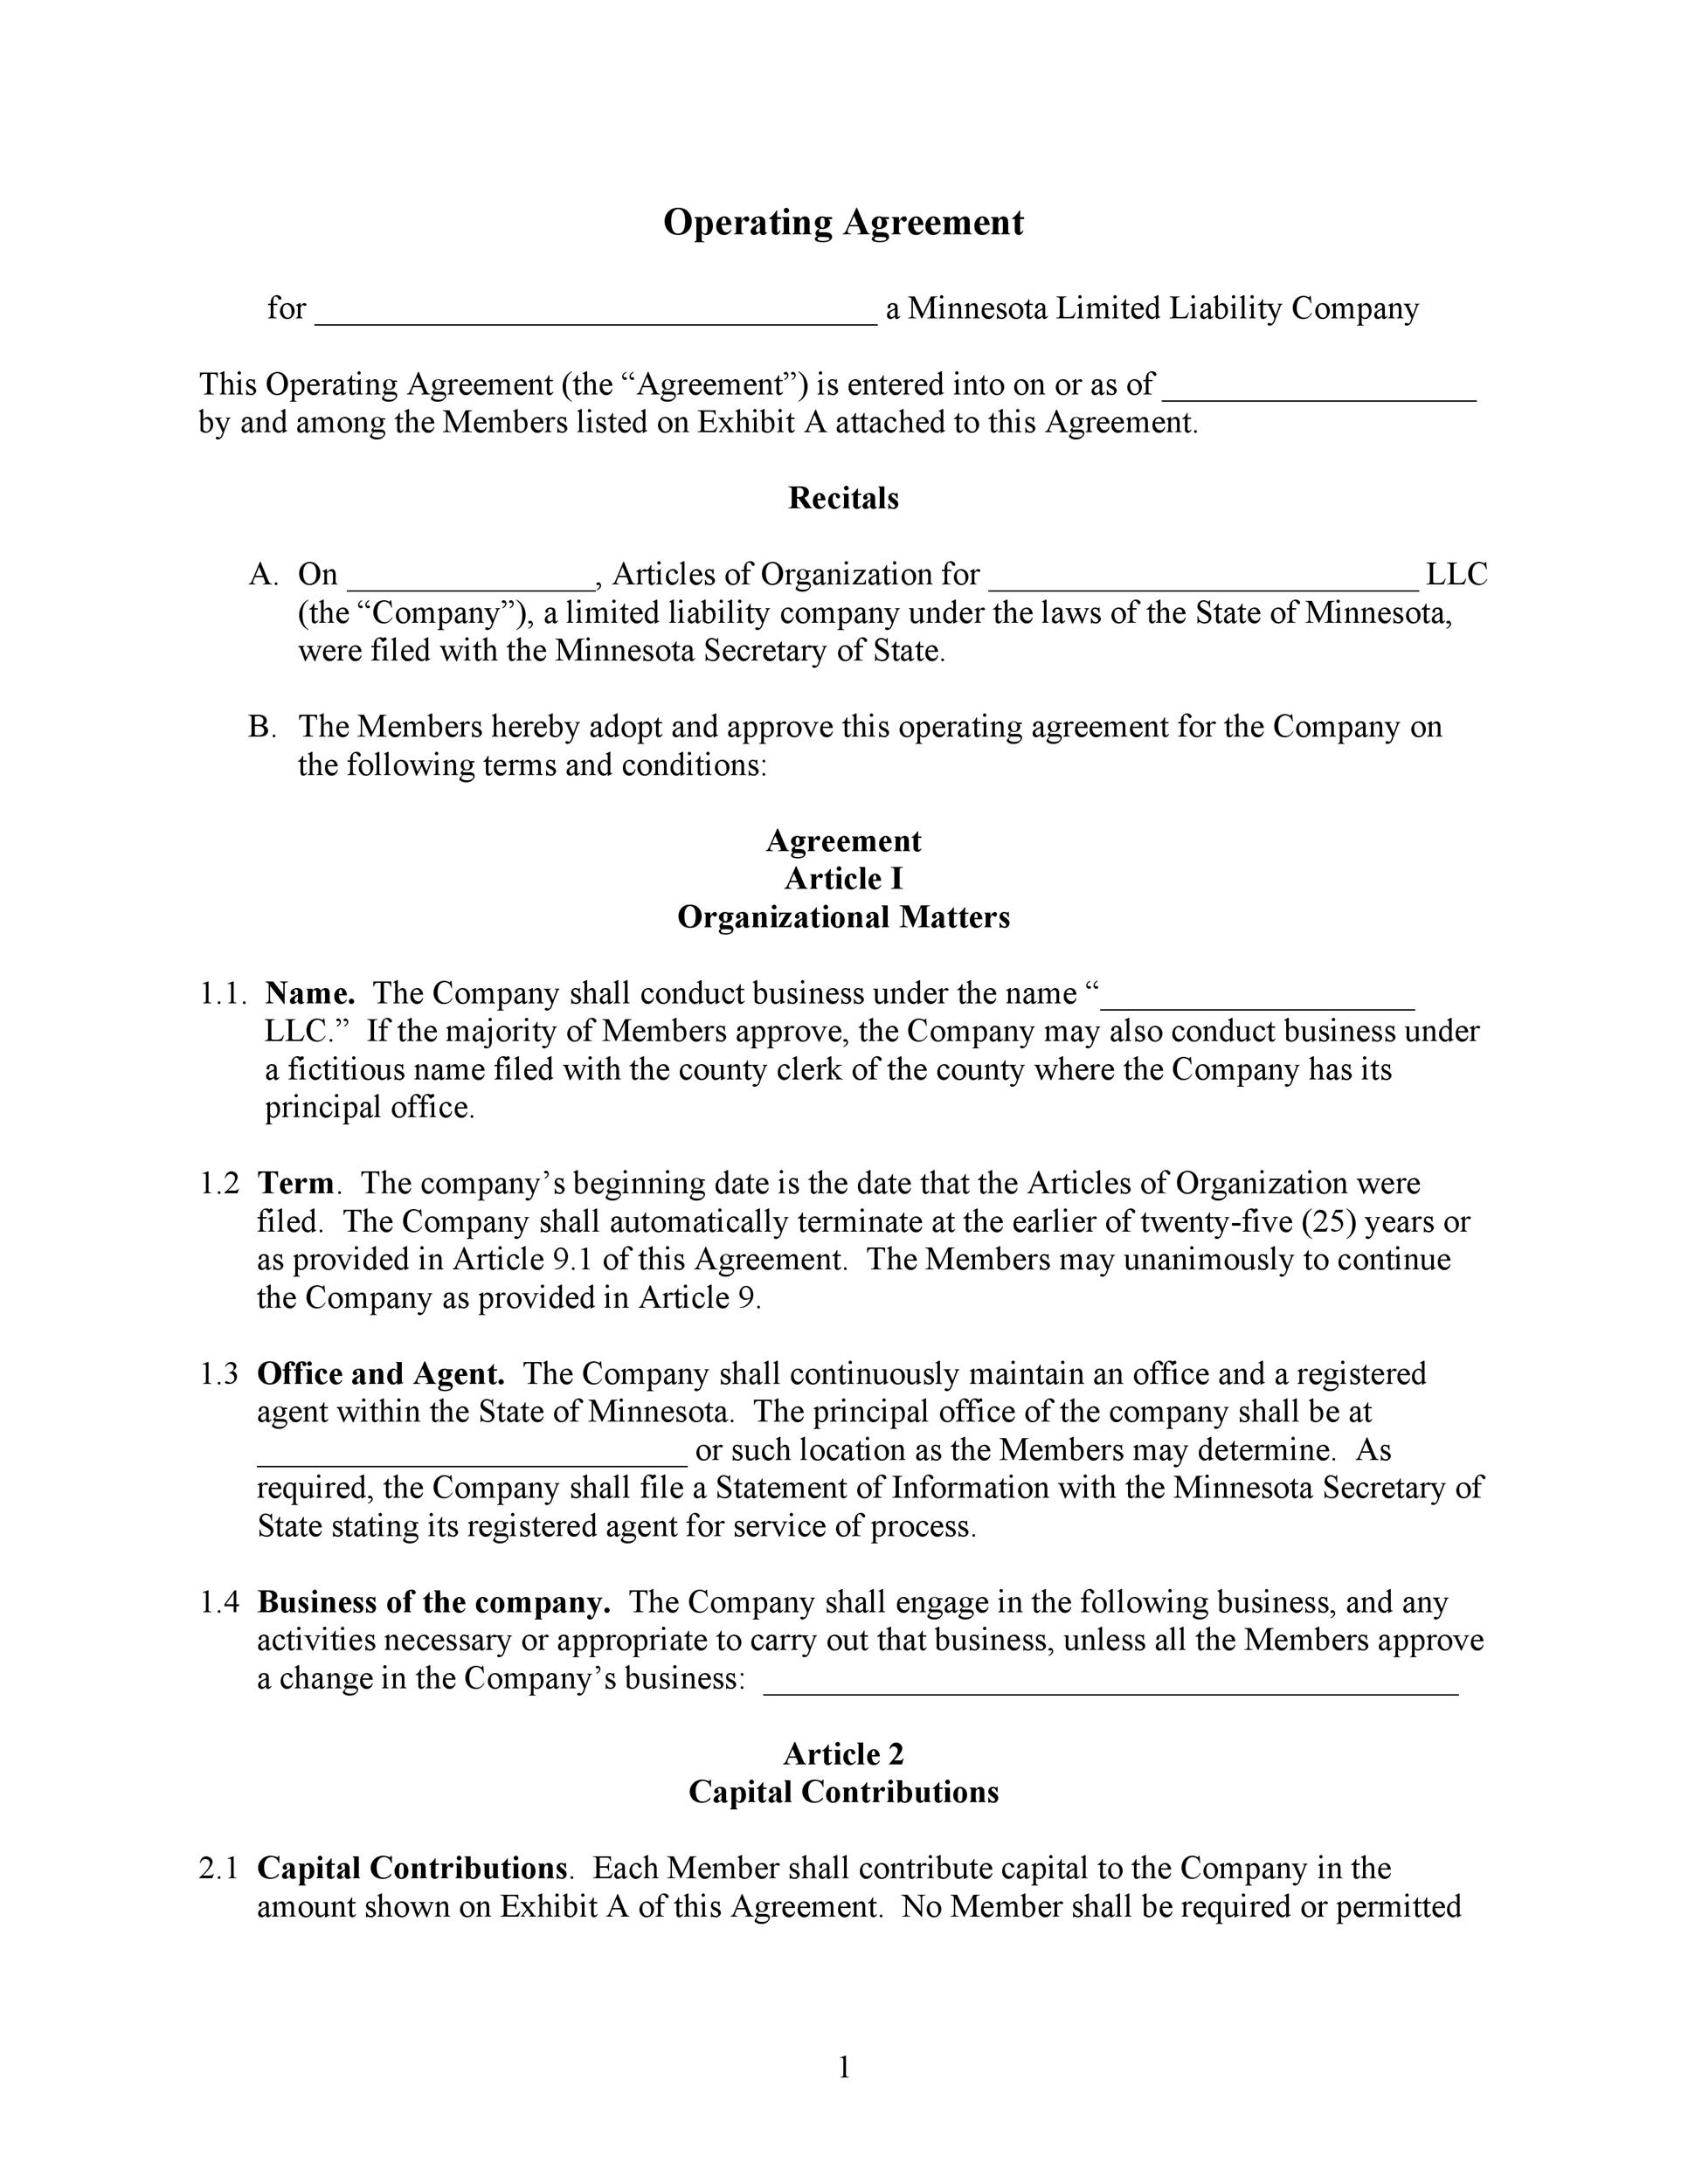 30 Professional LLC Operating Agreement Templates - Template Lab - business operating agreement